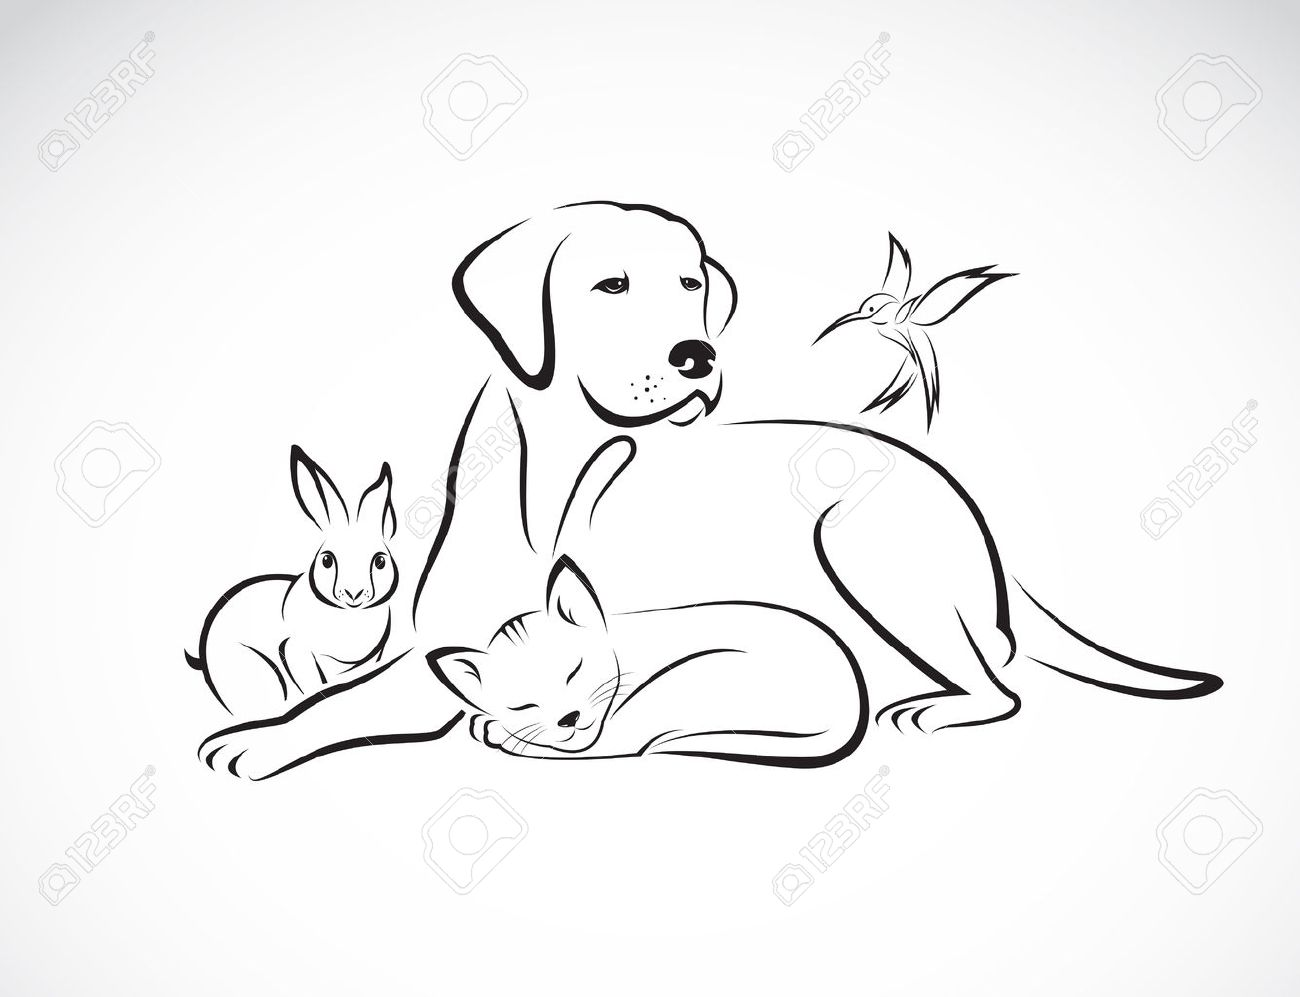 Vector group of pets - Dog, cat, bird, rabbit, isolated on white background - 38923992